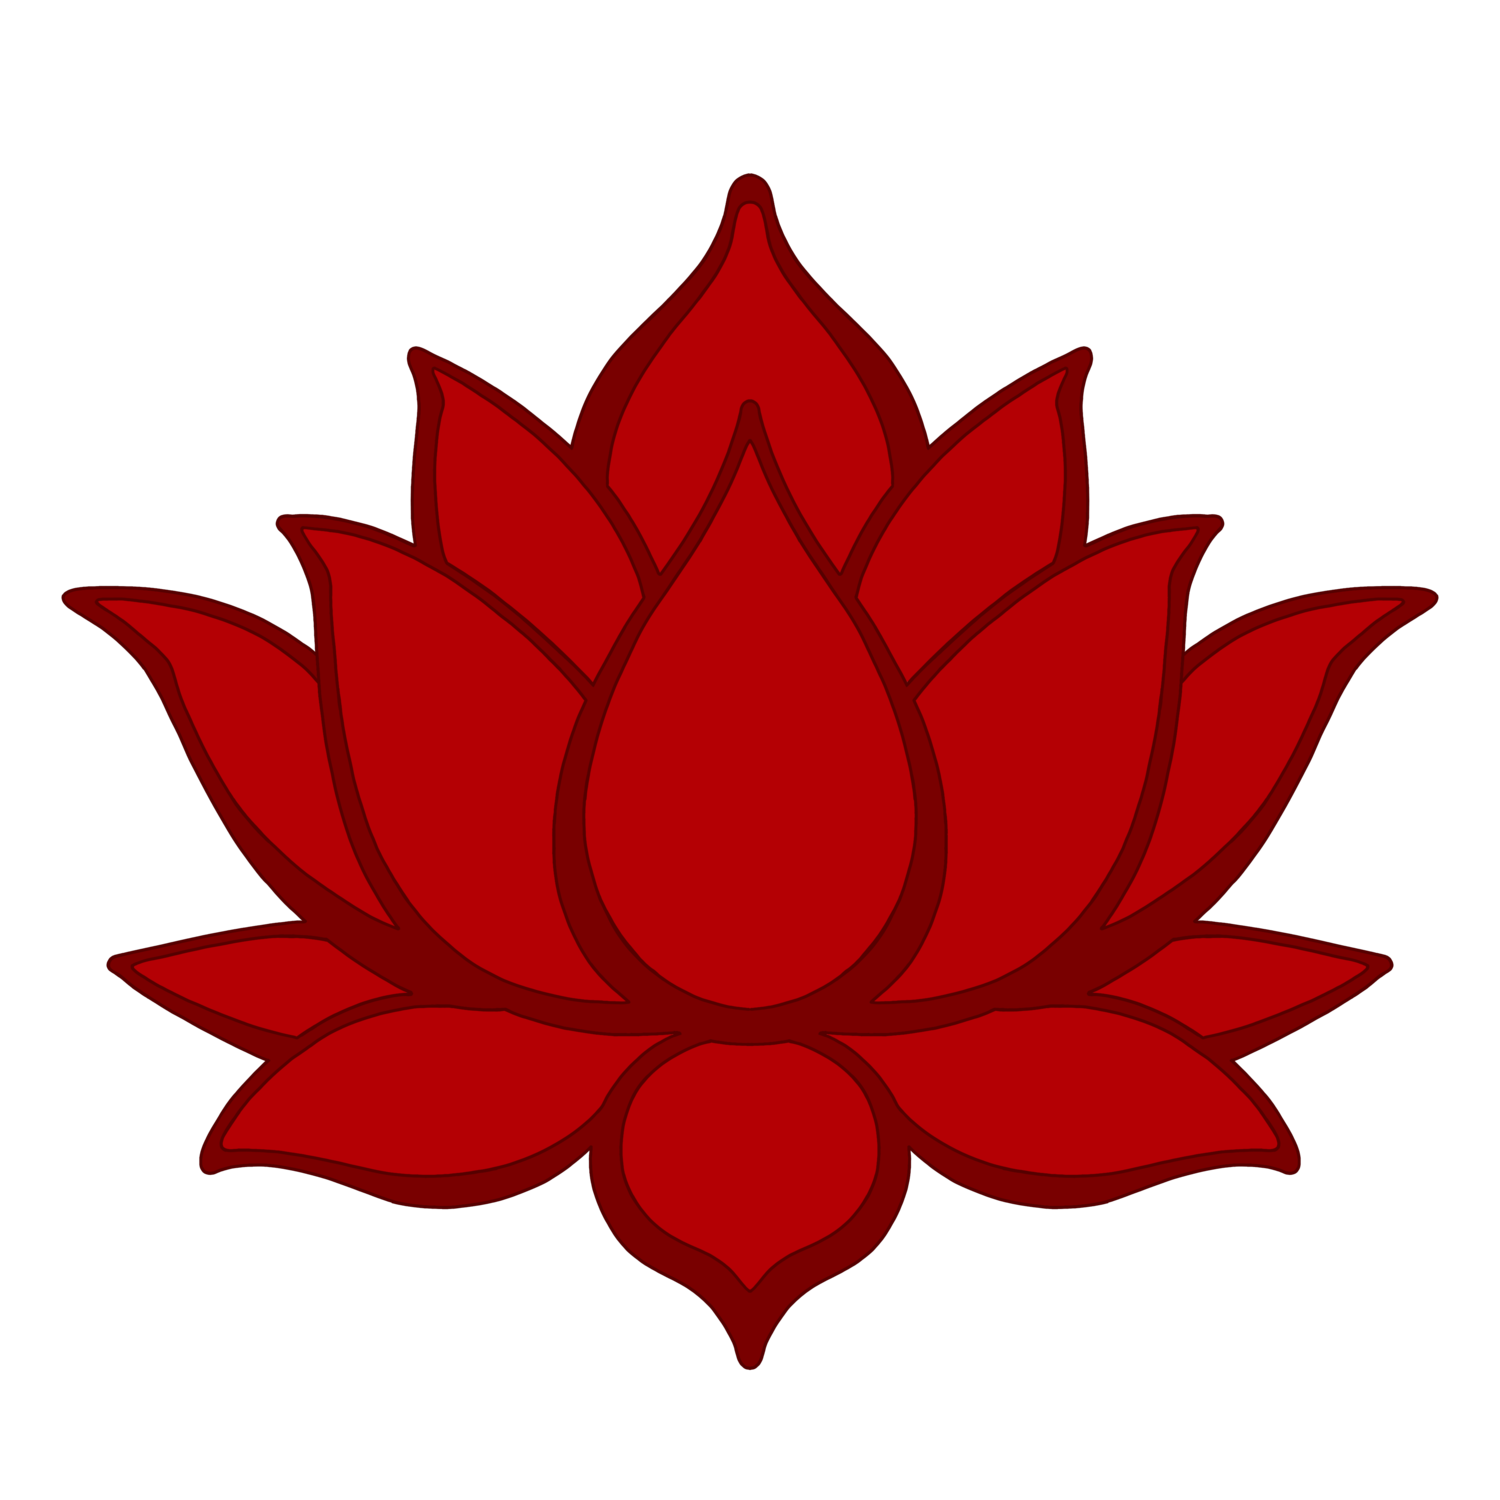 The House of the Lotus